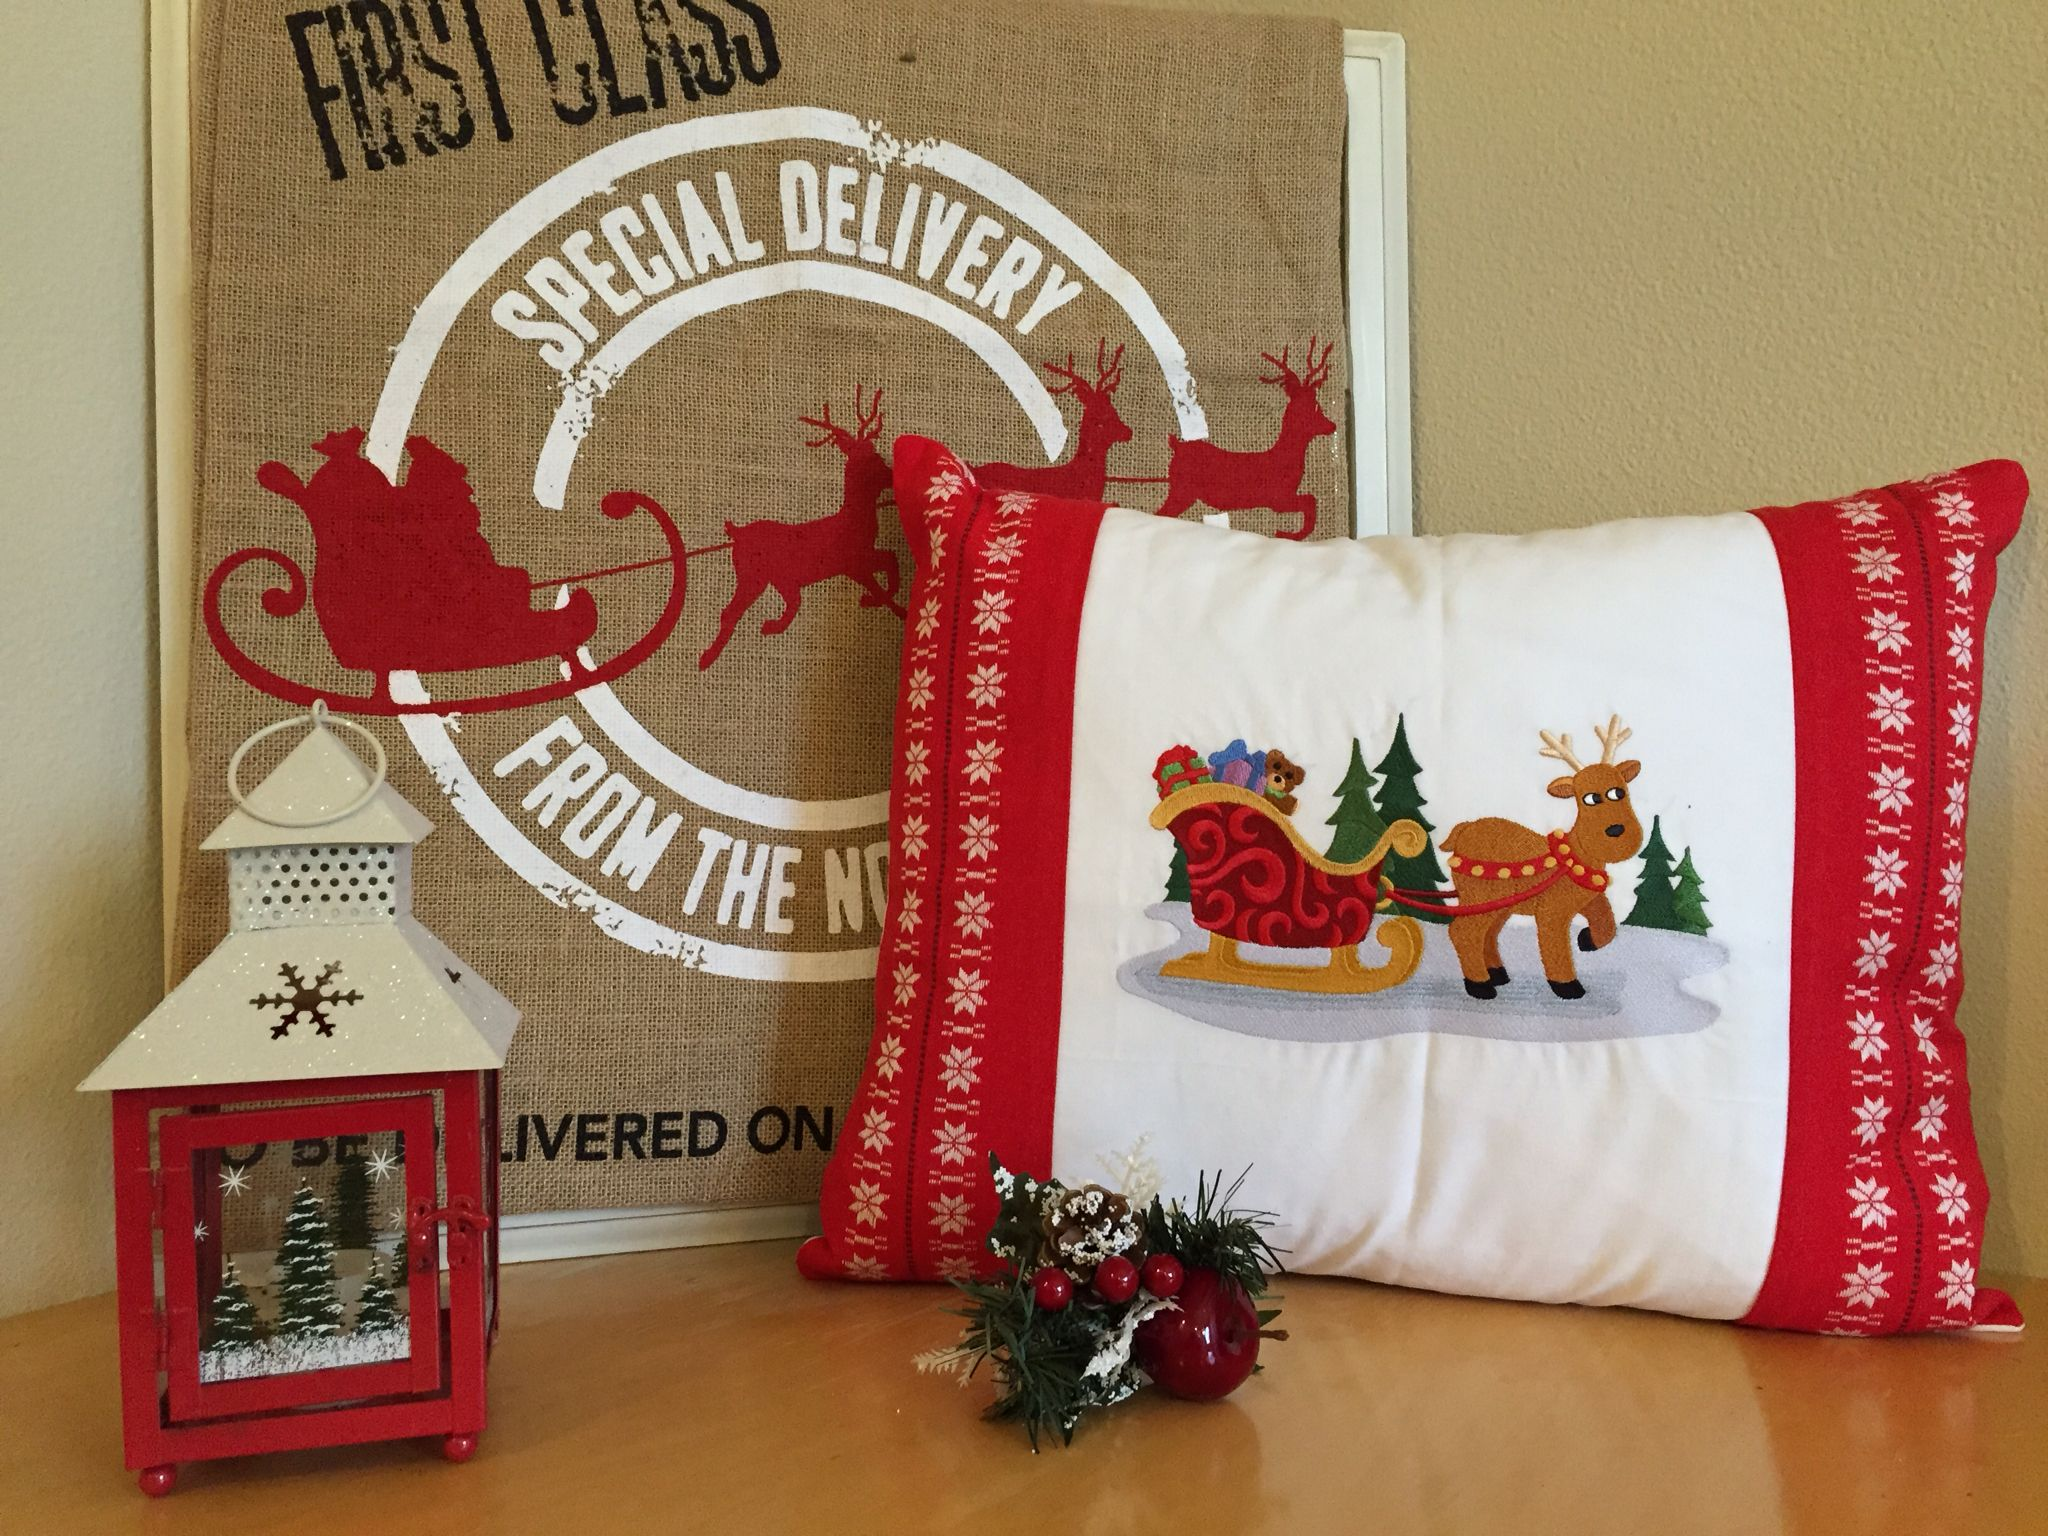 Darling Christmas Pillow made of vintage linens.  Embroidered Santa's Sleigh.  One of a kind Designer Pillow includes quality down/feather insert.  $133.00.  Use PIN10 Coupon Code for 10% off!  VintageStoryLinens at etsy.